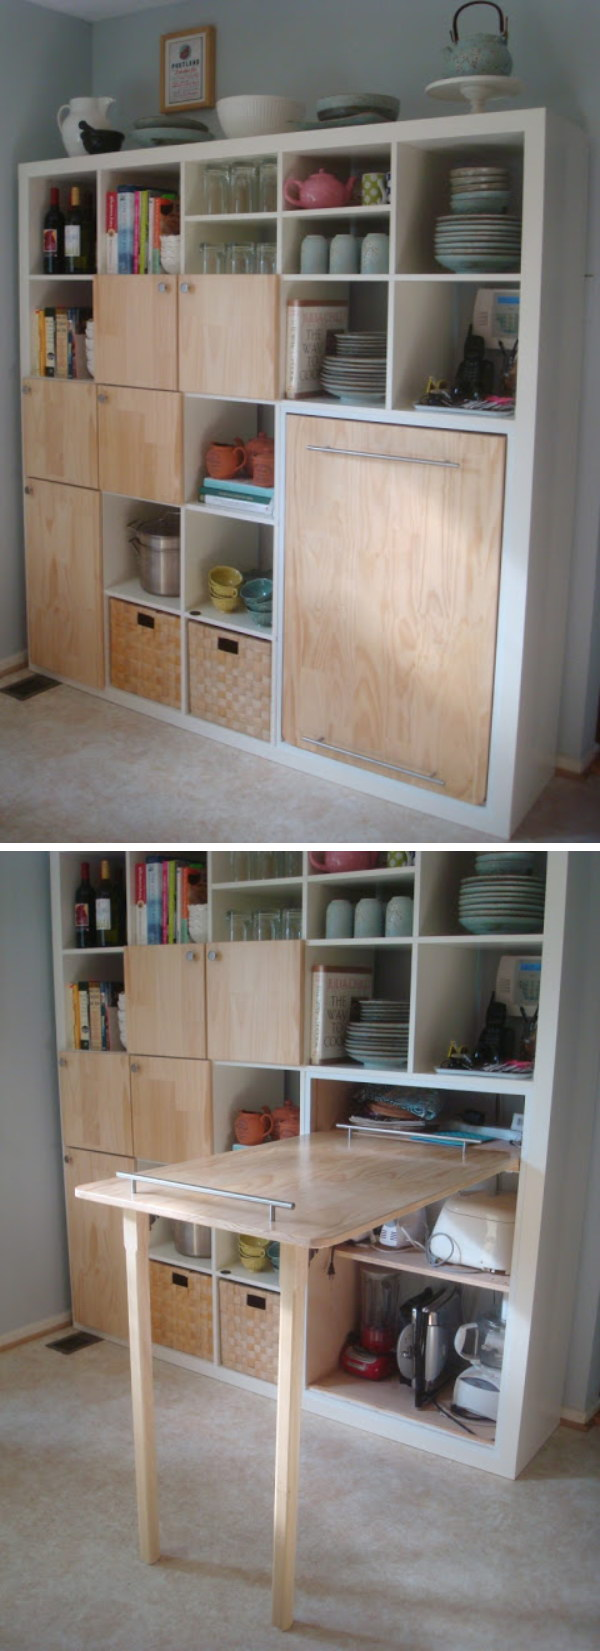 Pull-out Counter Top for Kitchen Storage.